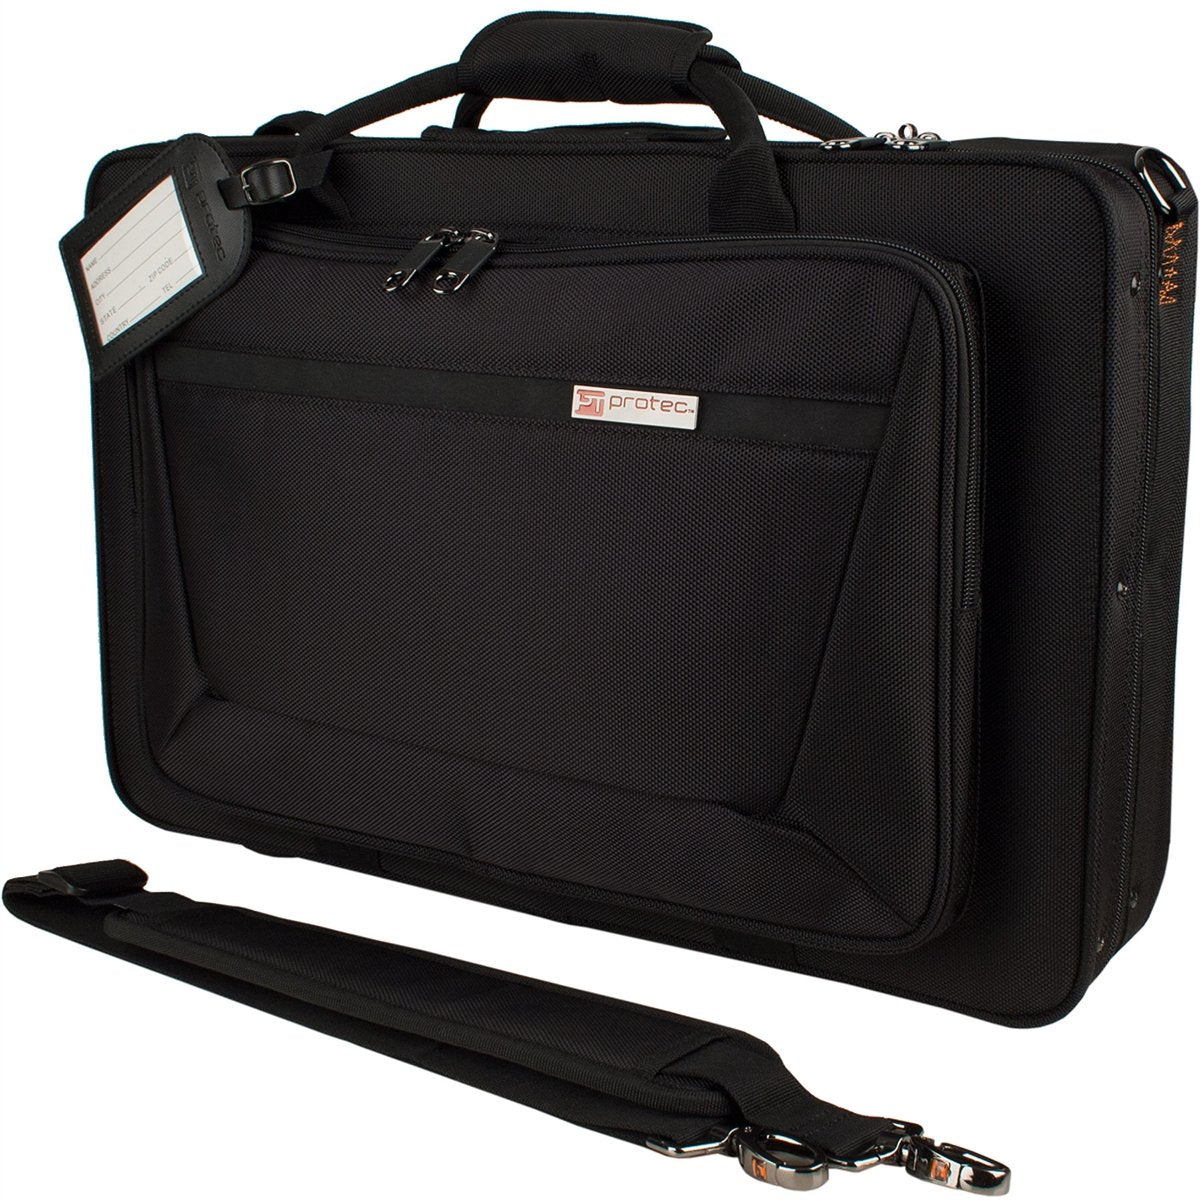 Protec - Oboe/English Horn Combi PRO PAC Case-Accessories-Protec-Music Elements